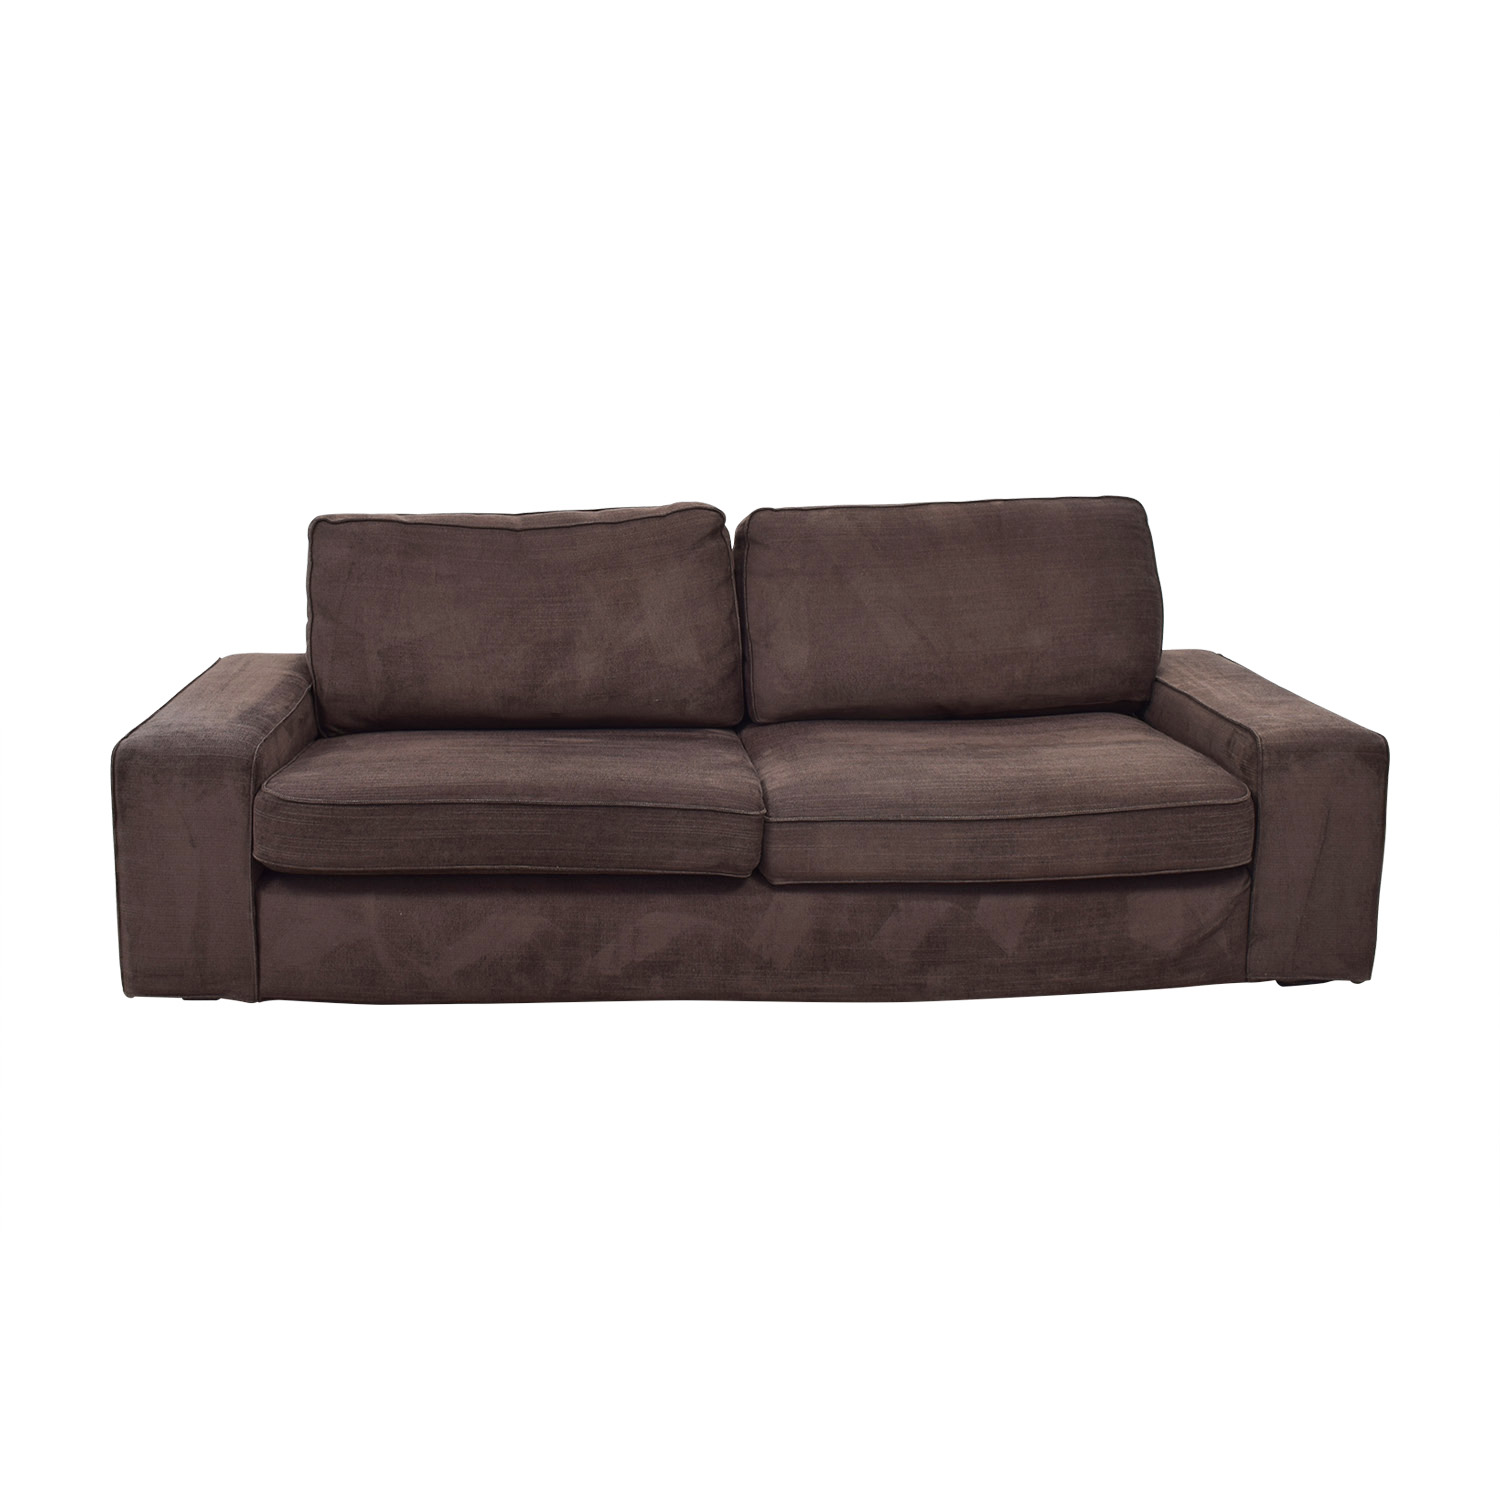 IKEA IKEA Kivik Brown Two-Cushion Sofa dimensions